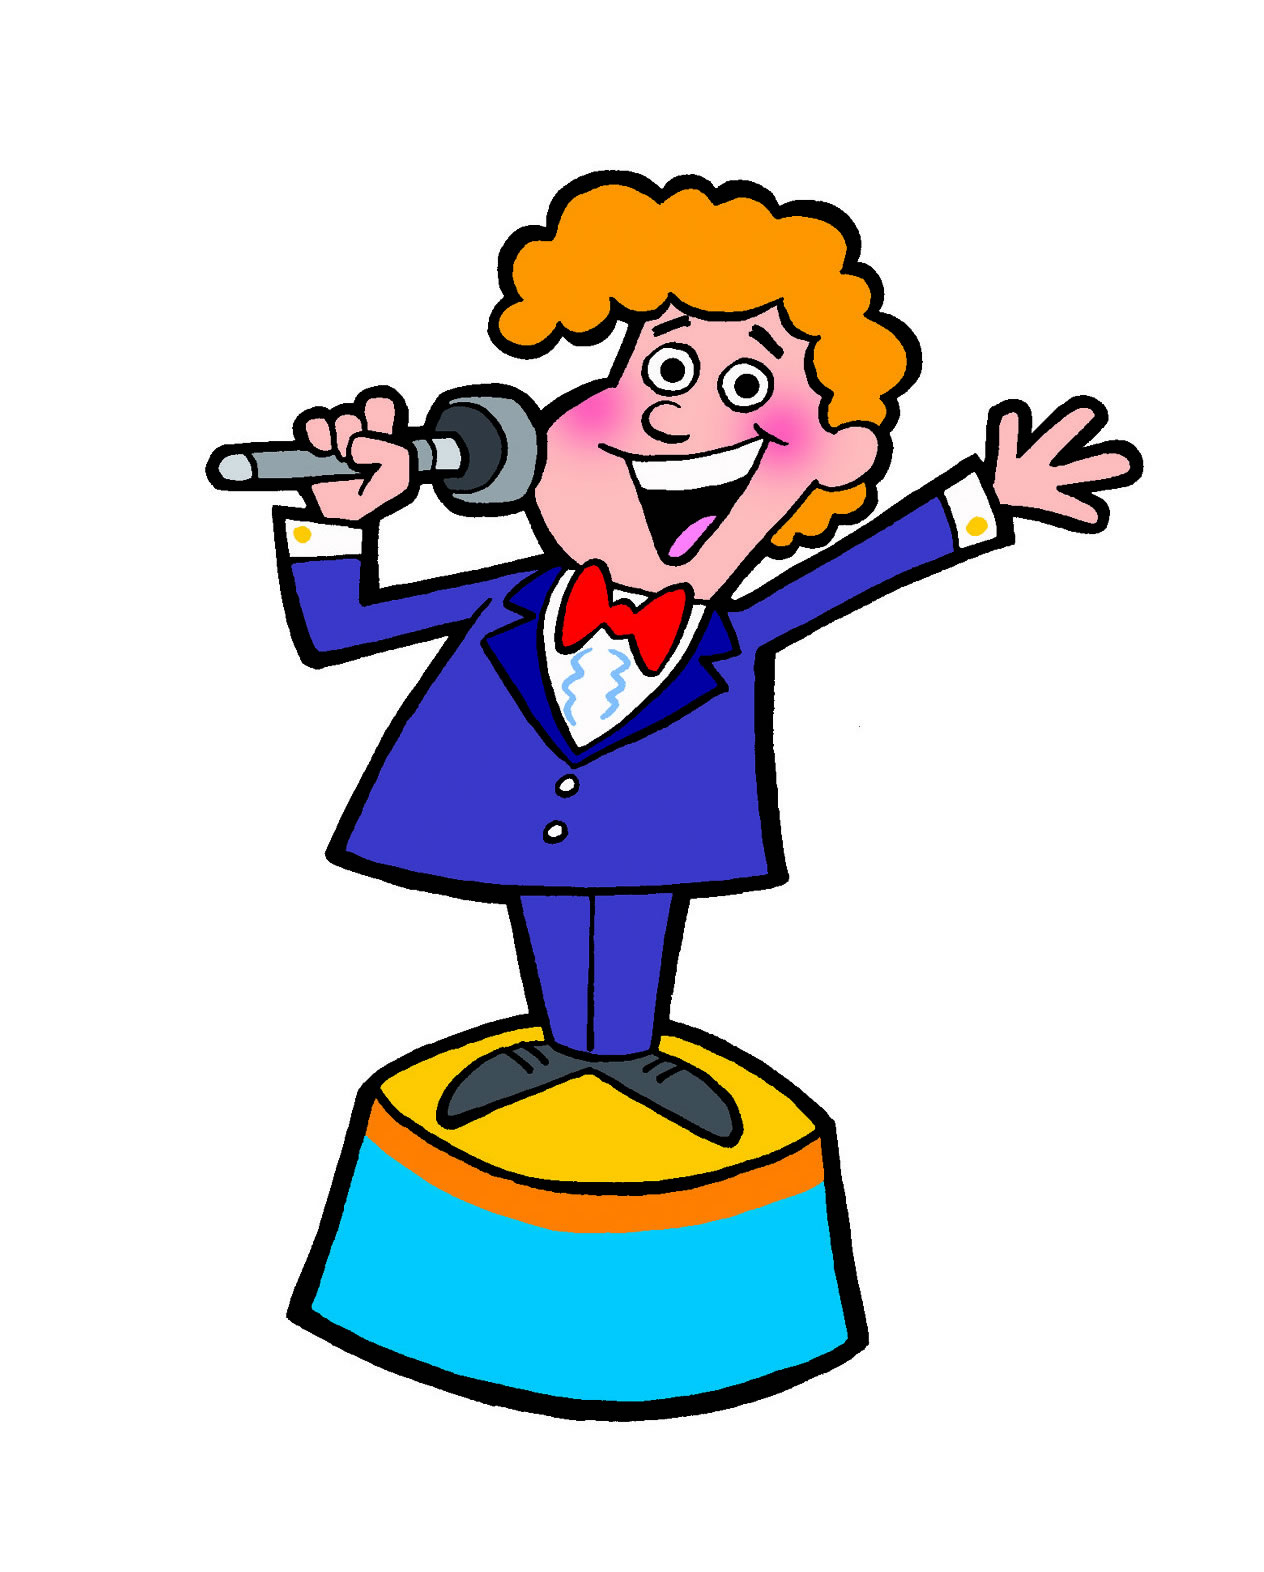 Speaking Clip Art - Cliparts.co